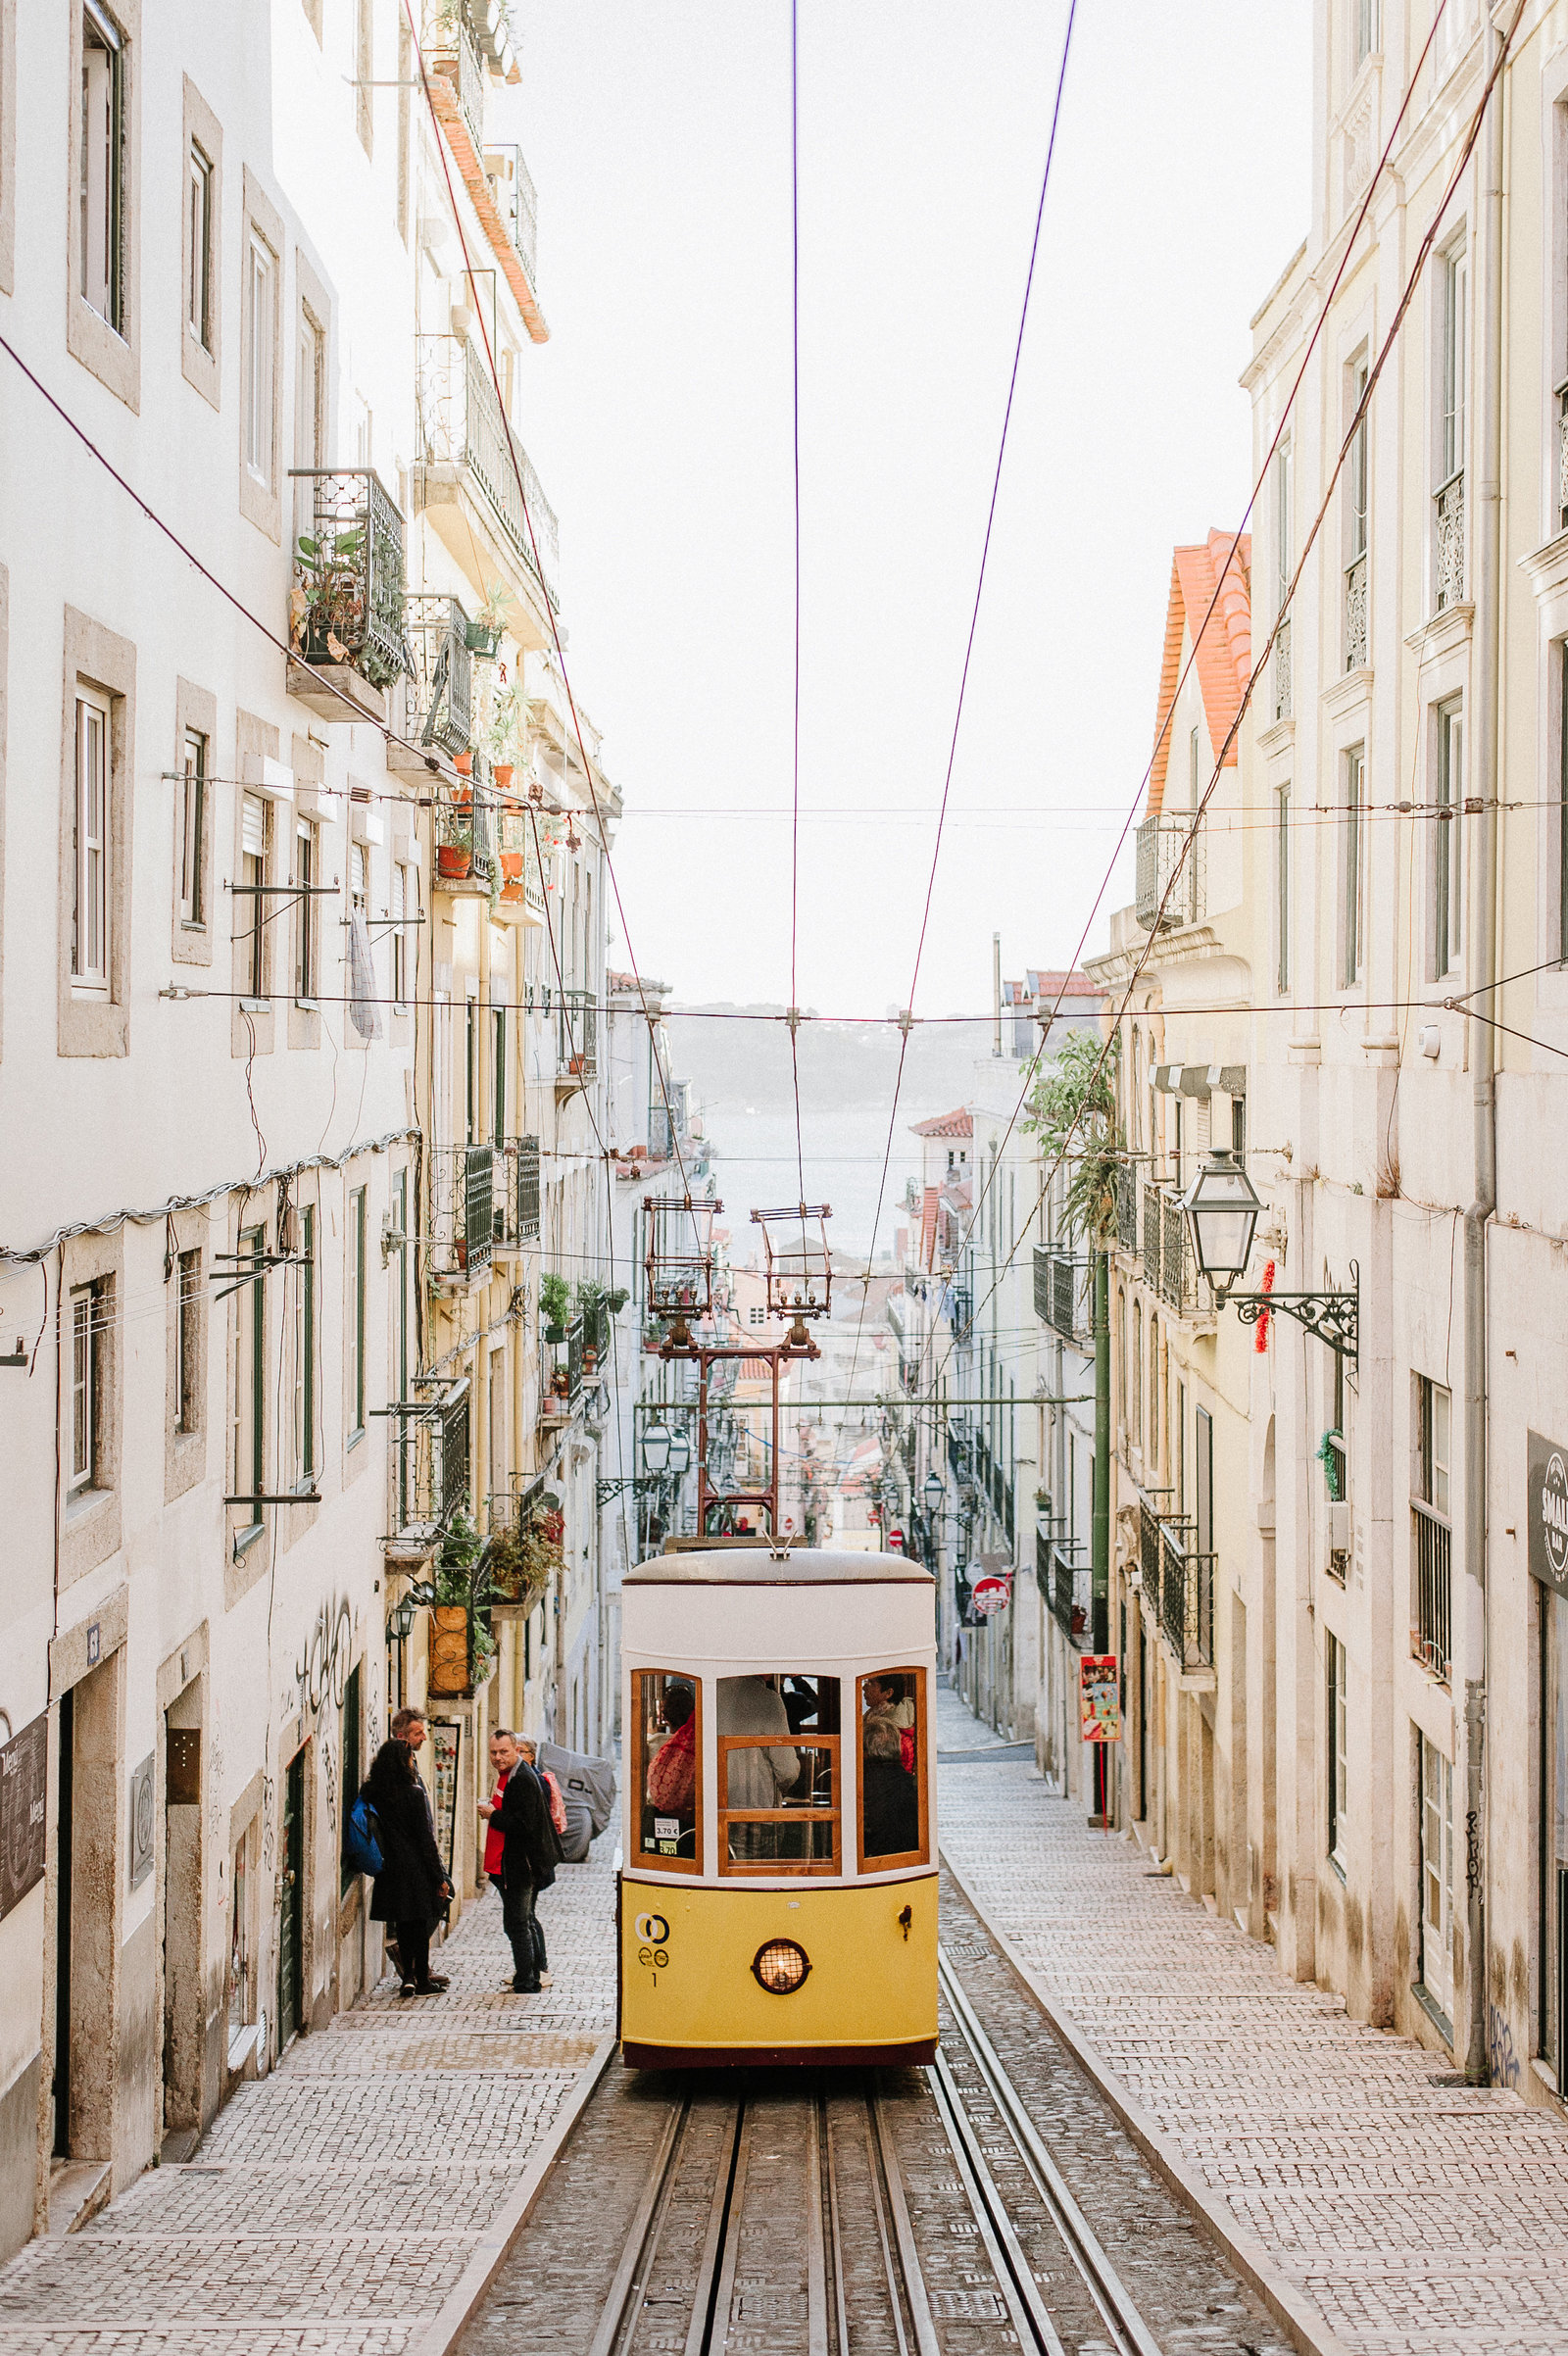 lisbon-portugal-cable-car-photo